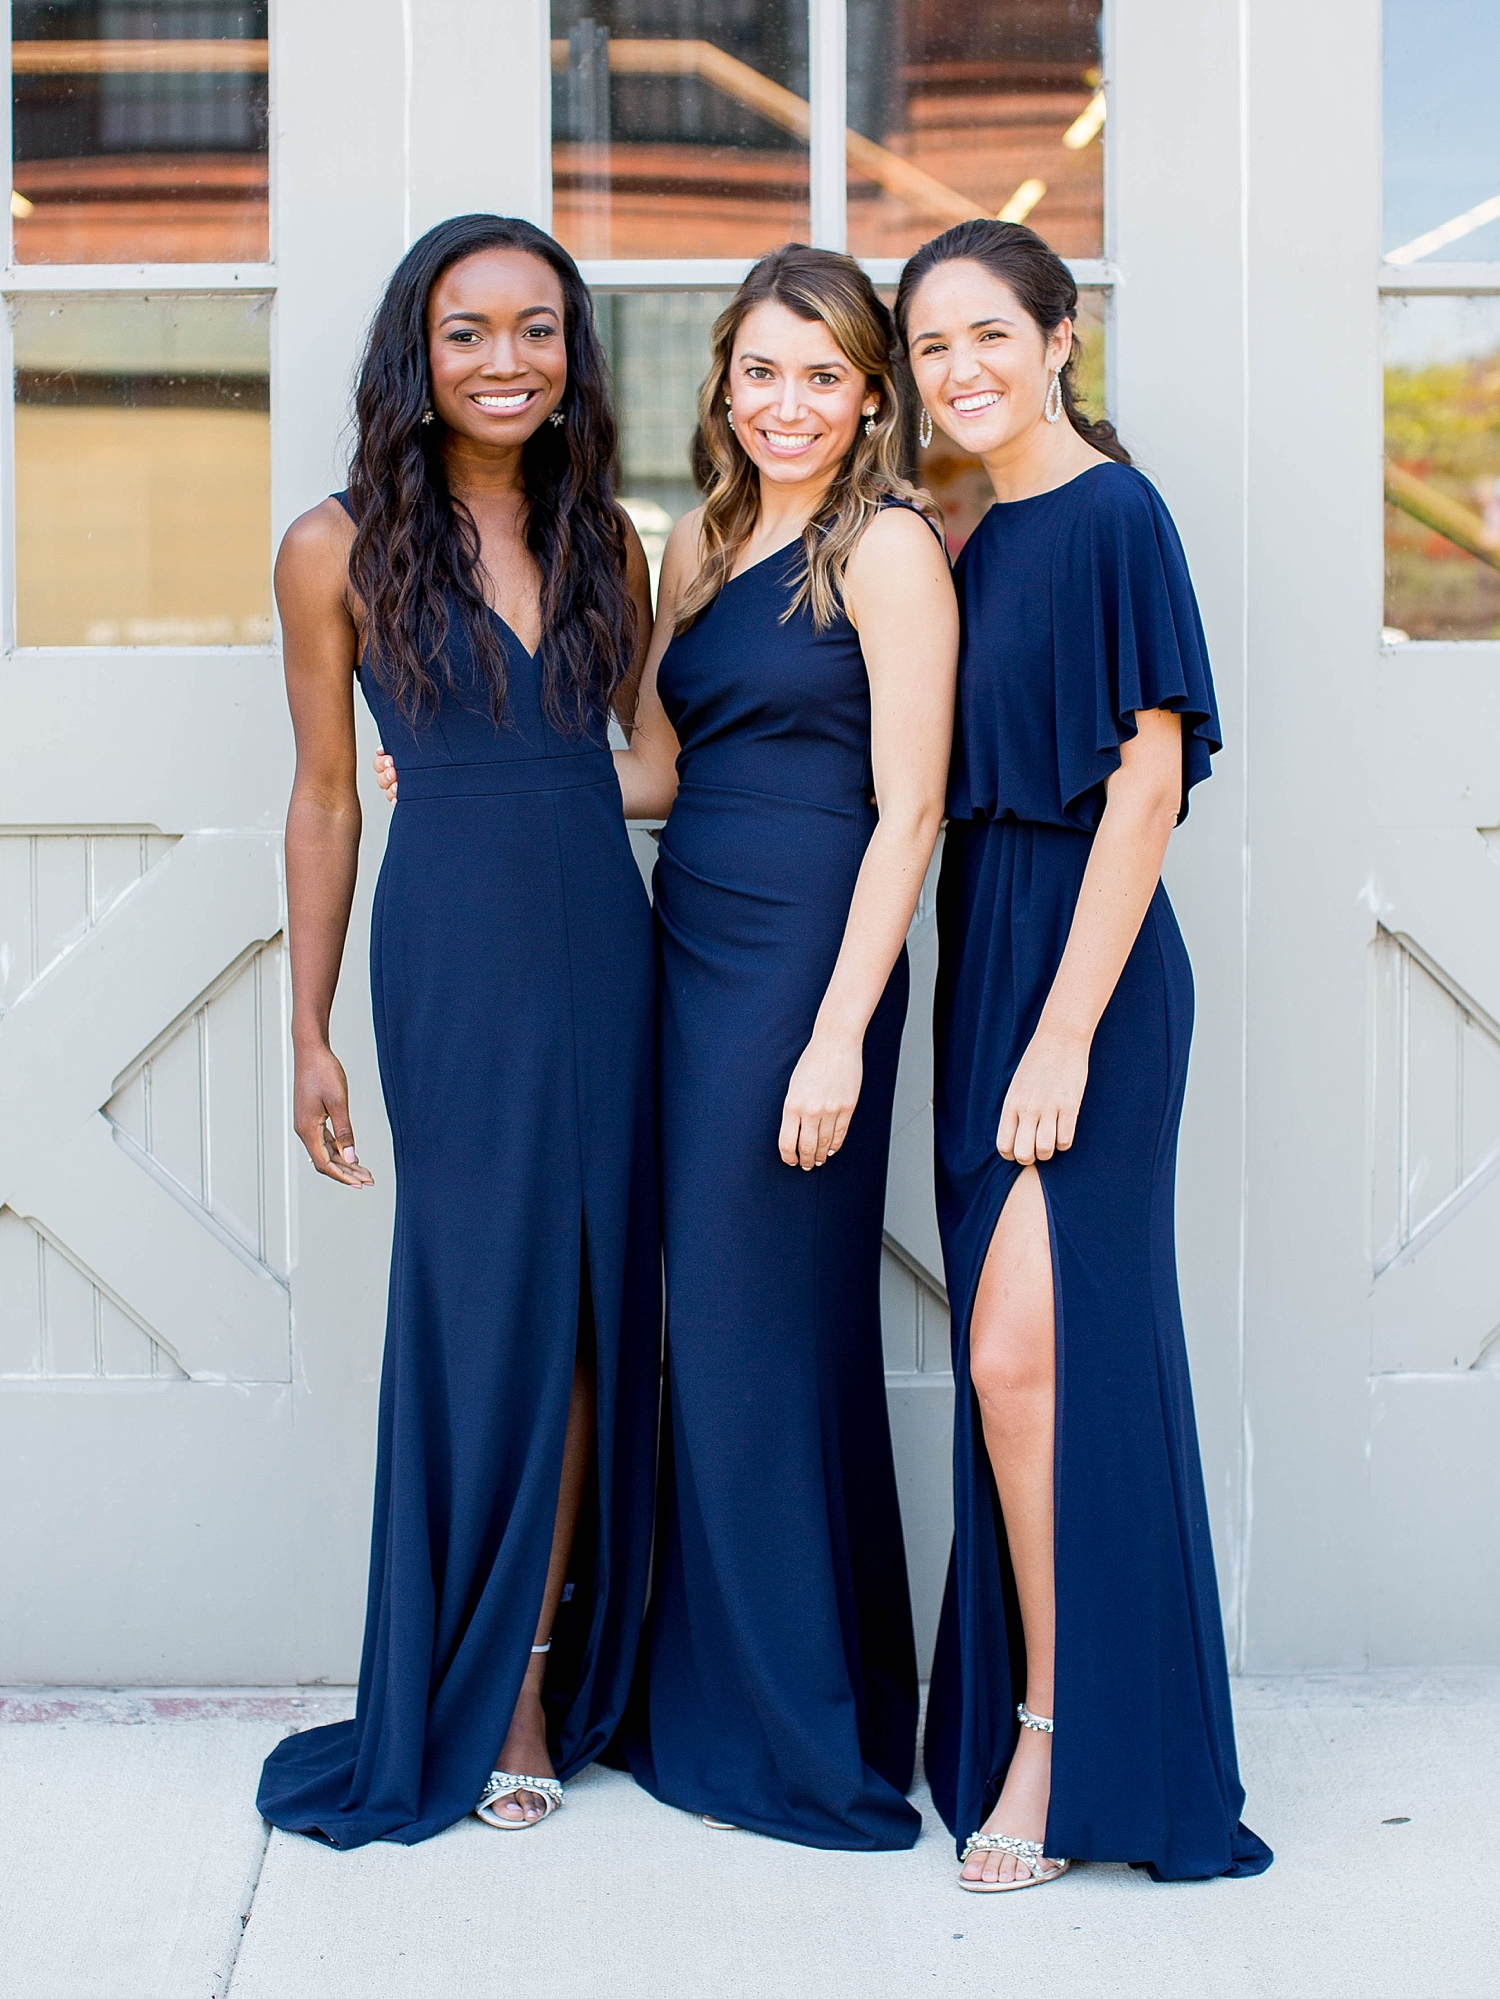 BHLDN Bridesmaids Dresses Campaign Philadelphia New Jersey Wedding Fashion Photography by Kelee Bovelle_0025.jpg